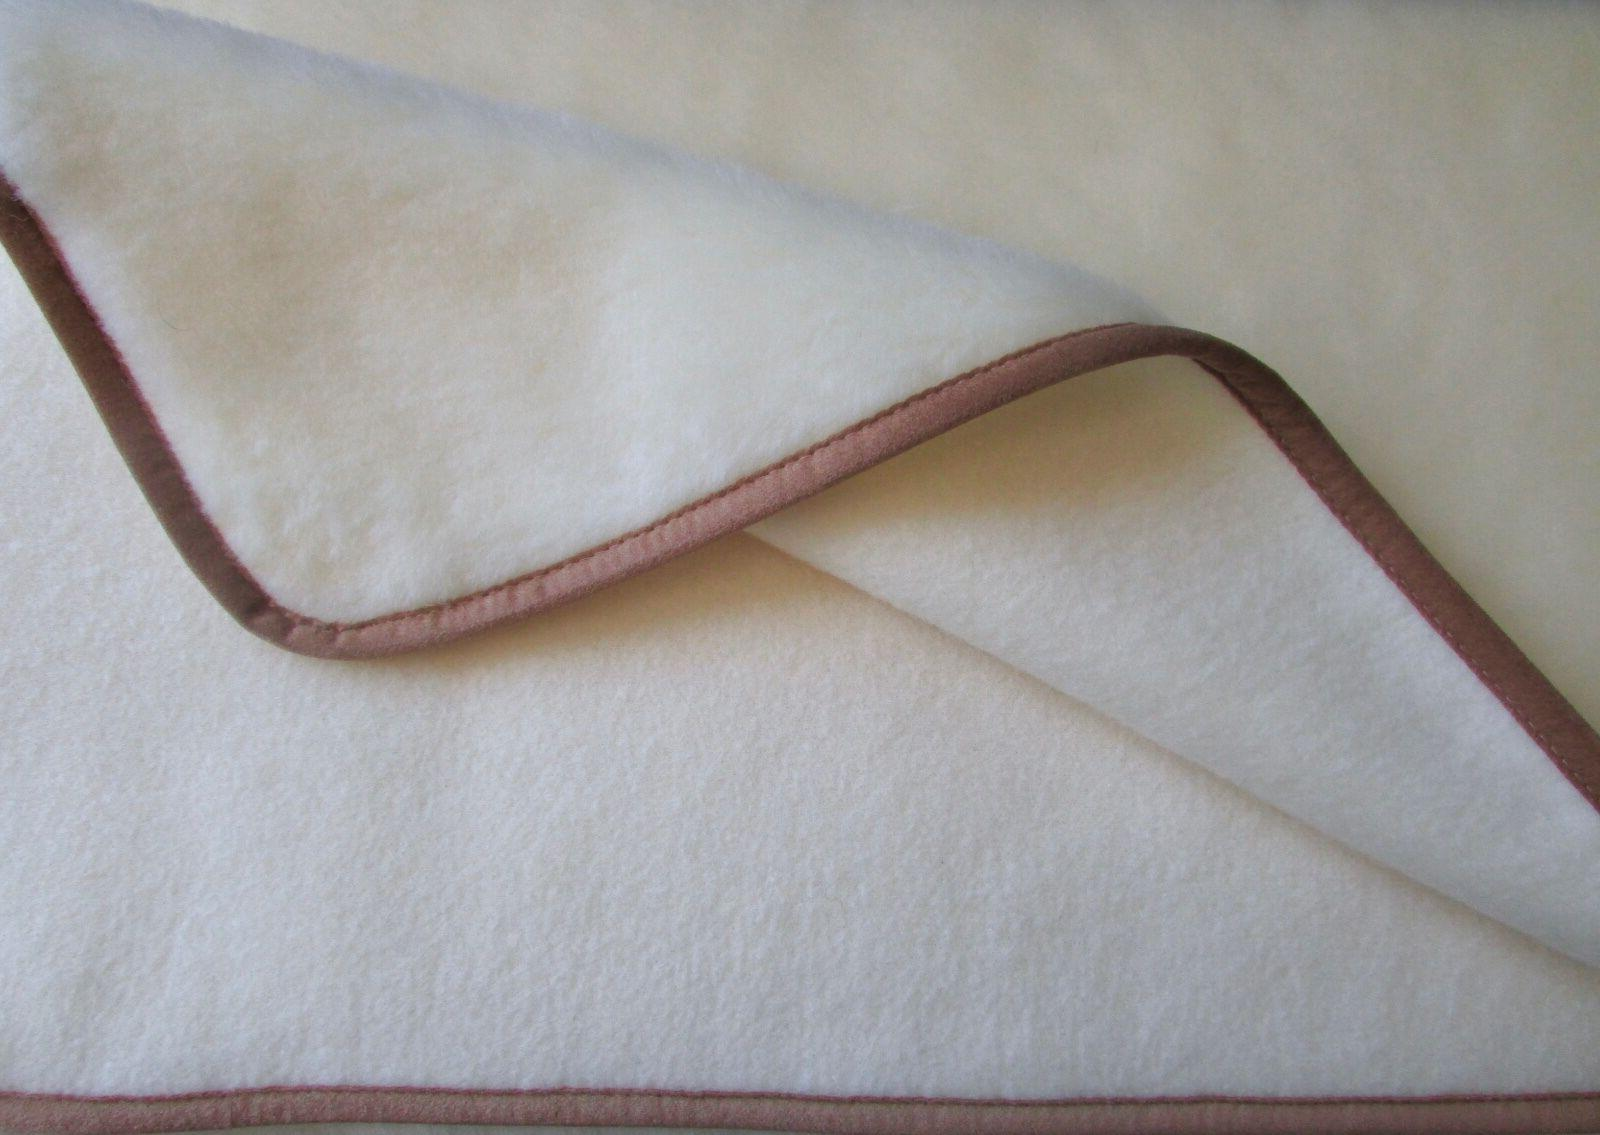 cashmere blanket wool bedspread throw sofa couch